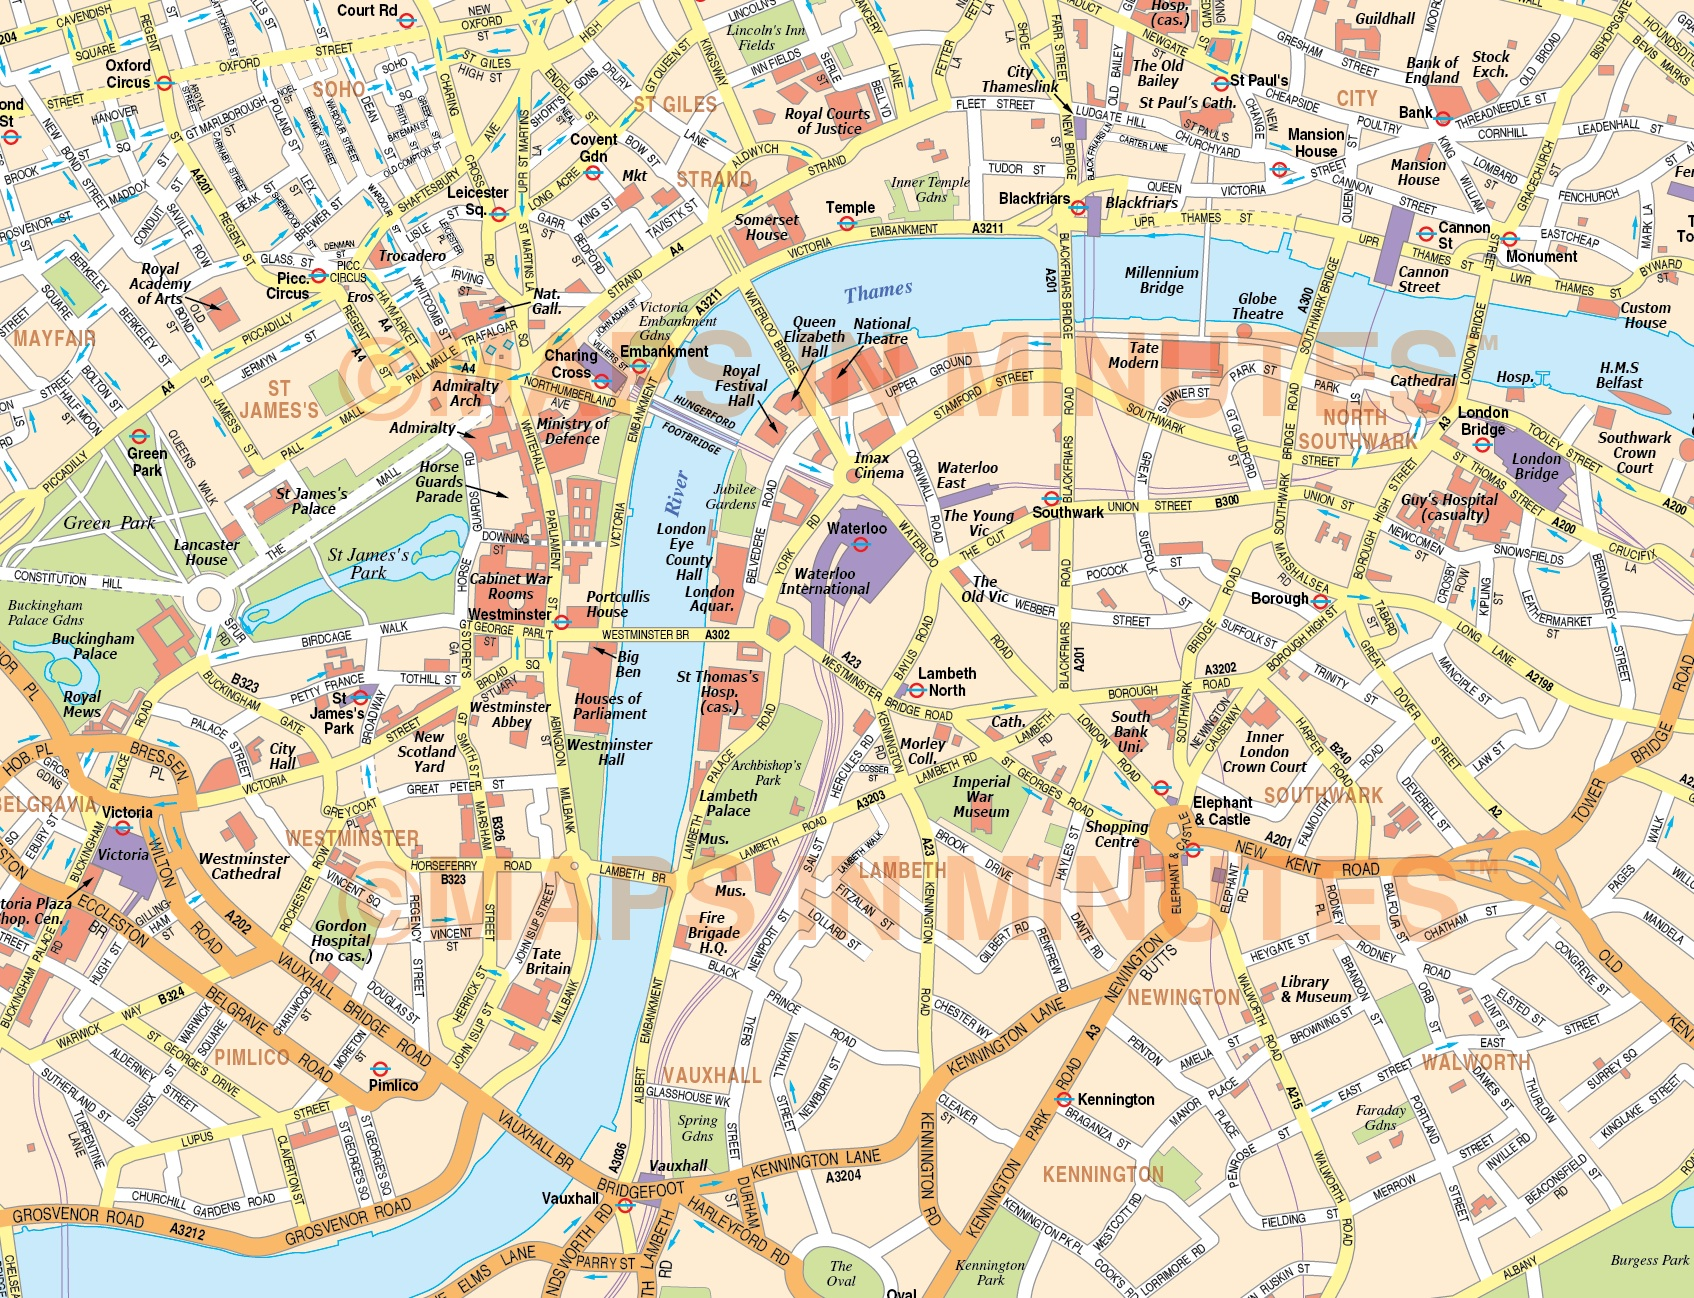 london economy city map in illustrator cs or pdf format